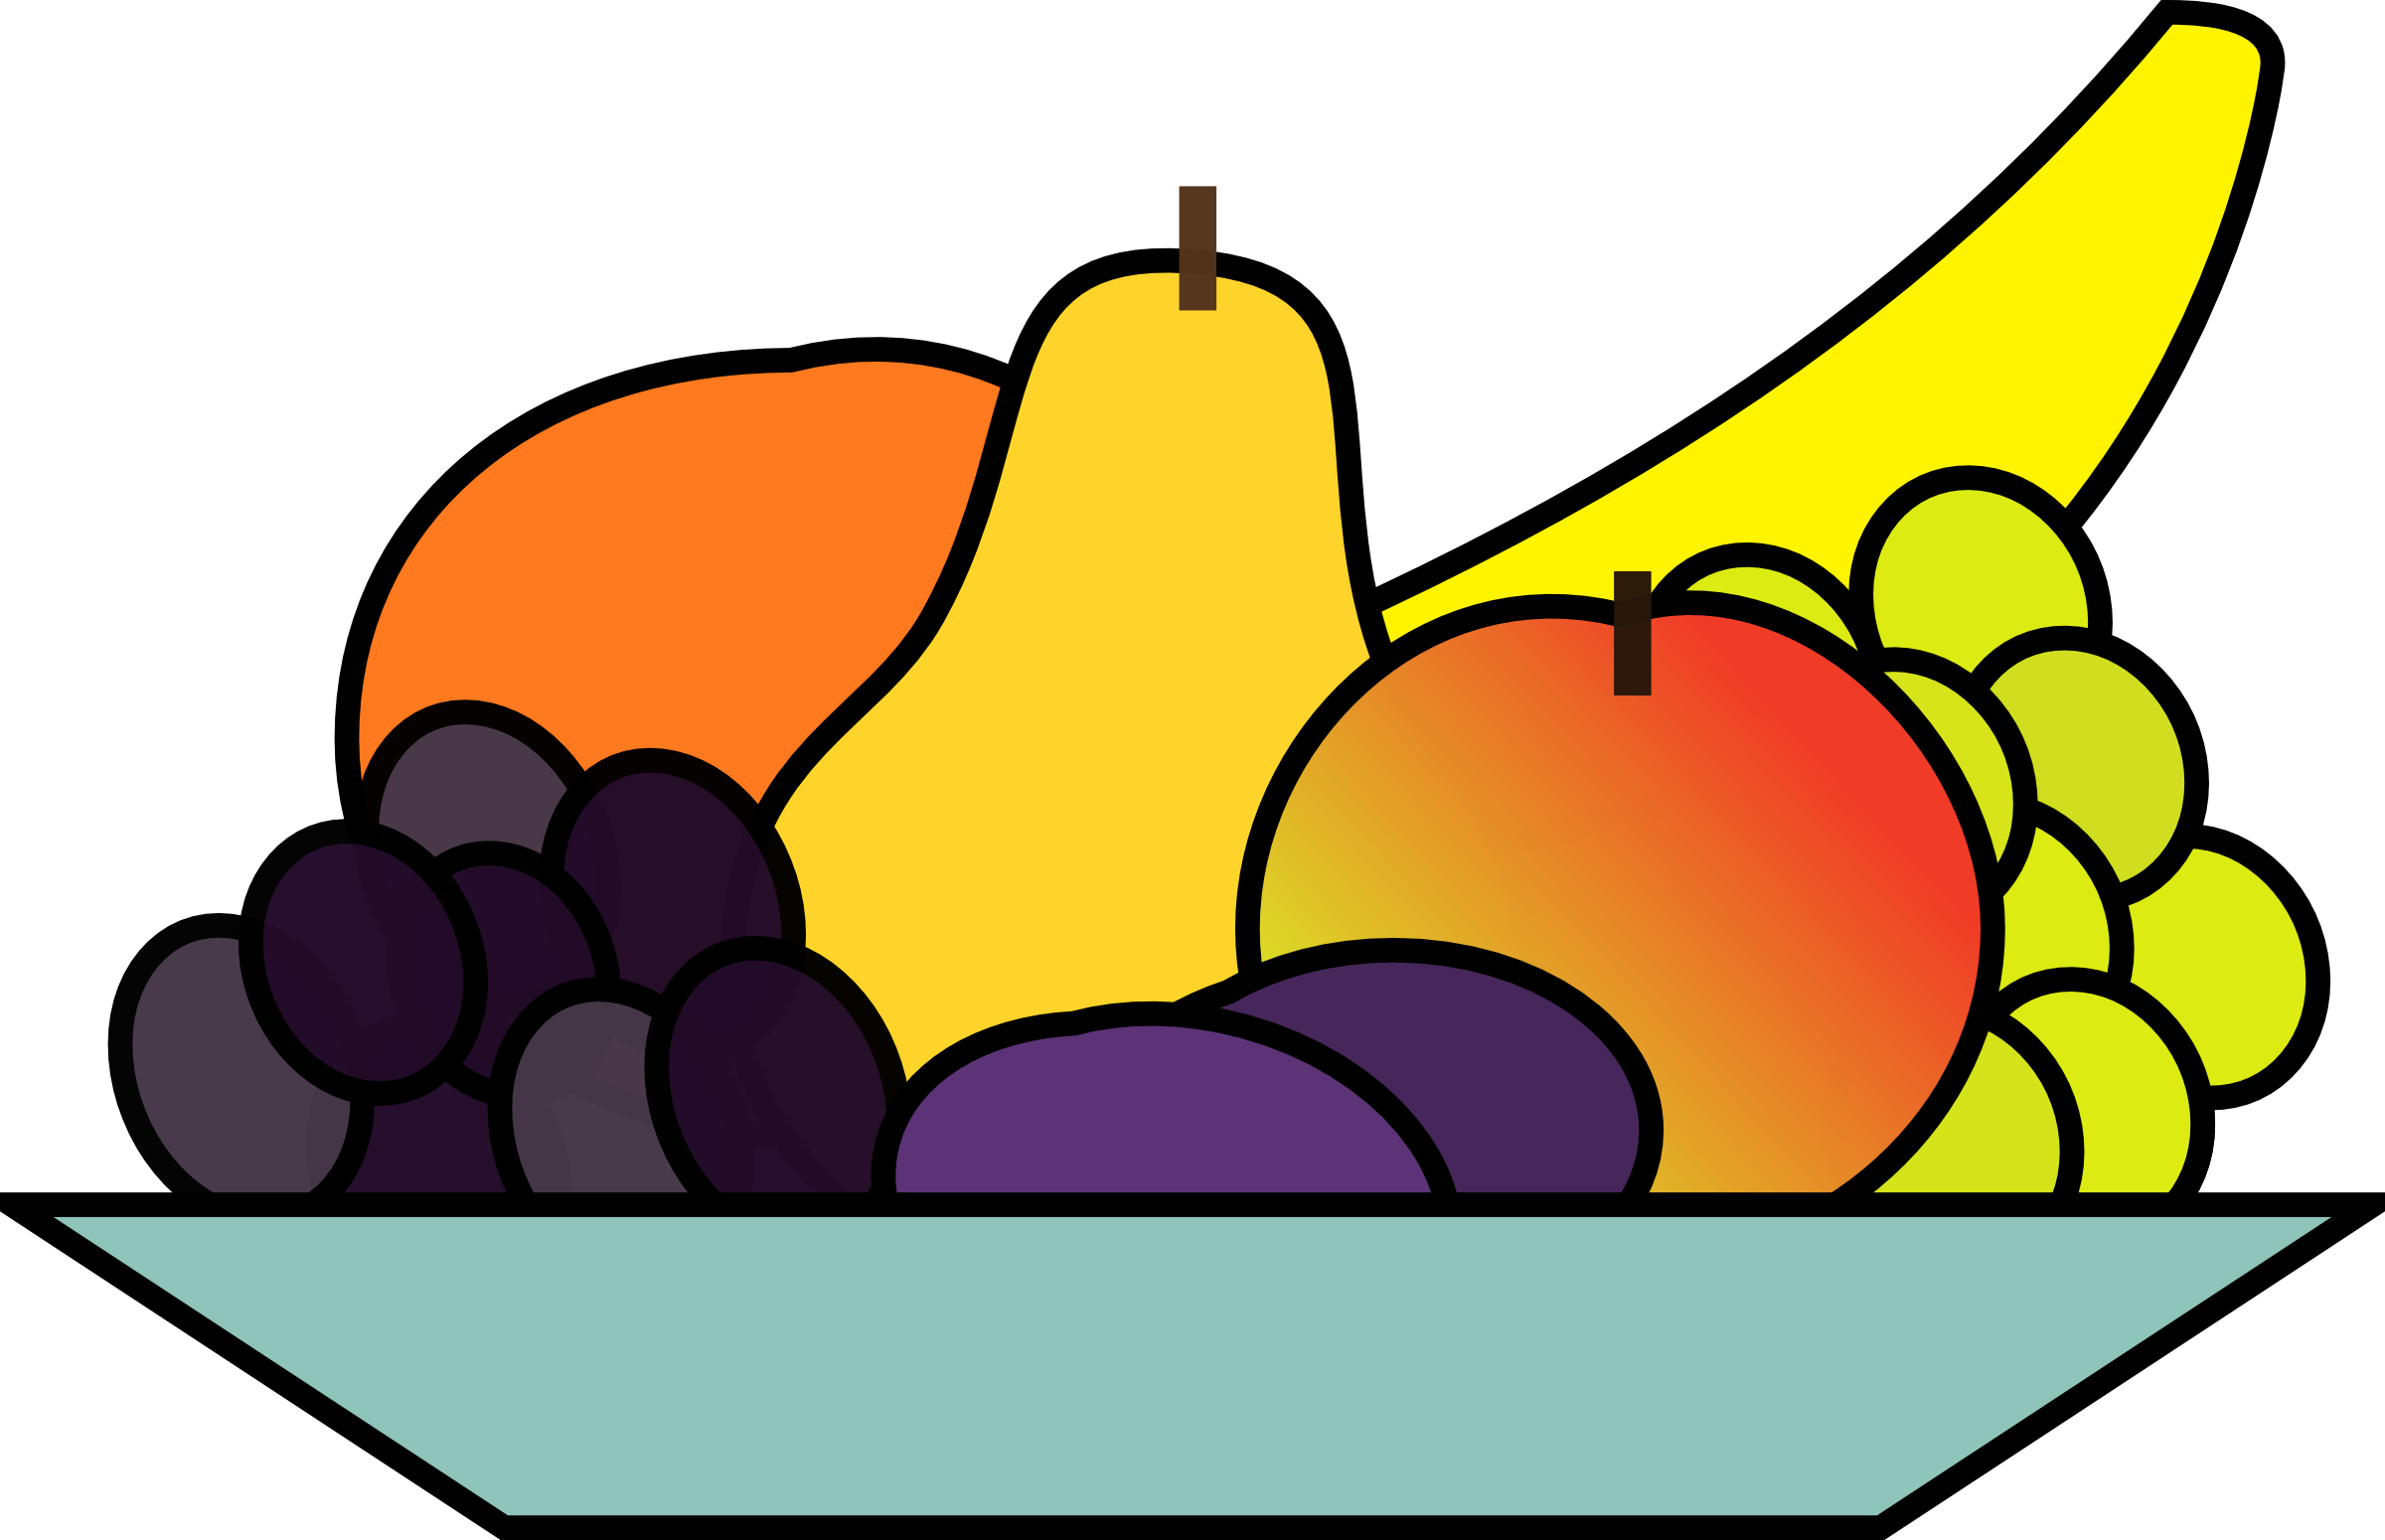 Fruits clipart cheese. Fruit plate panda free